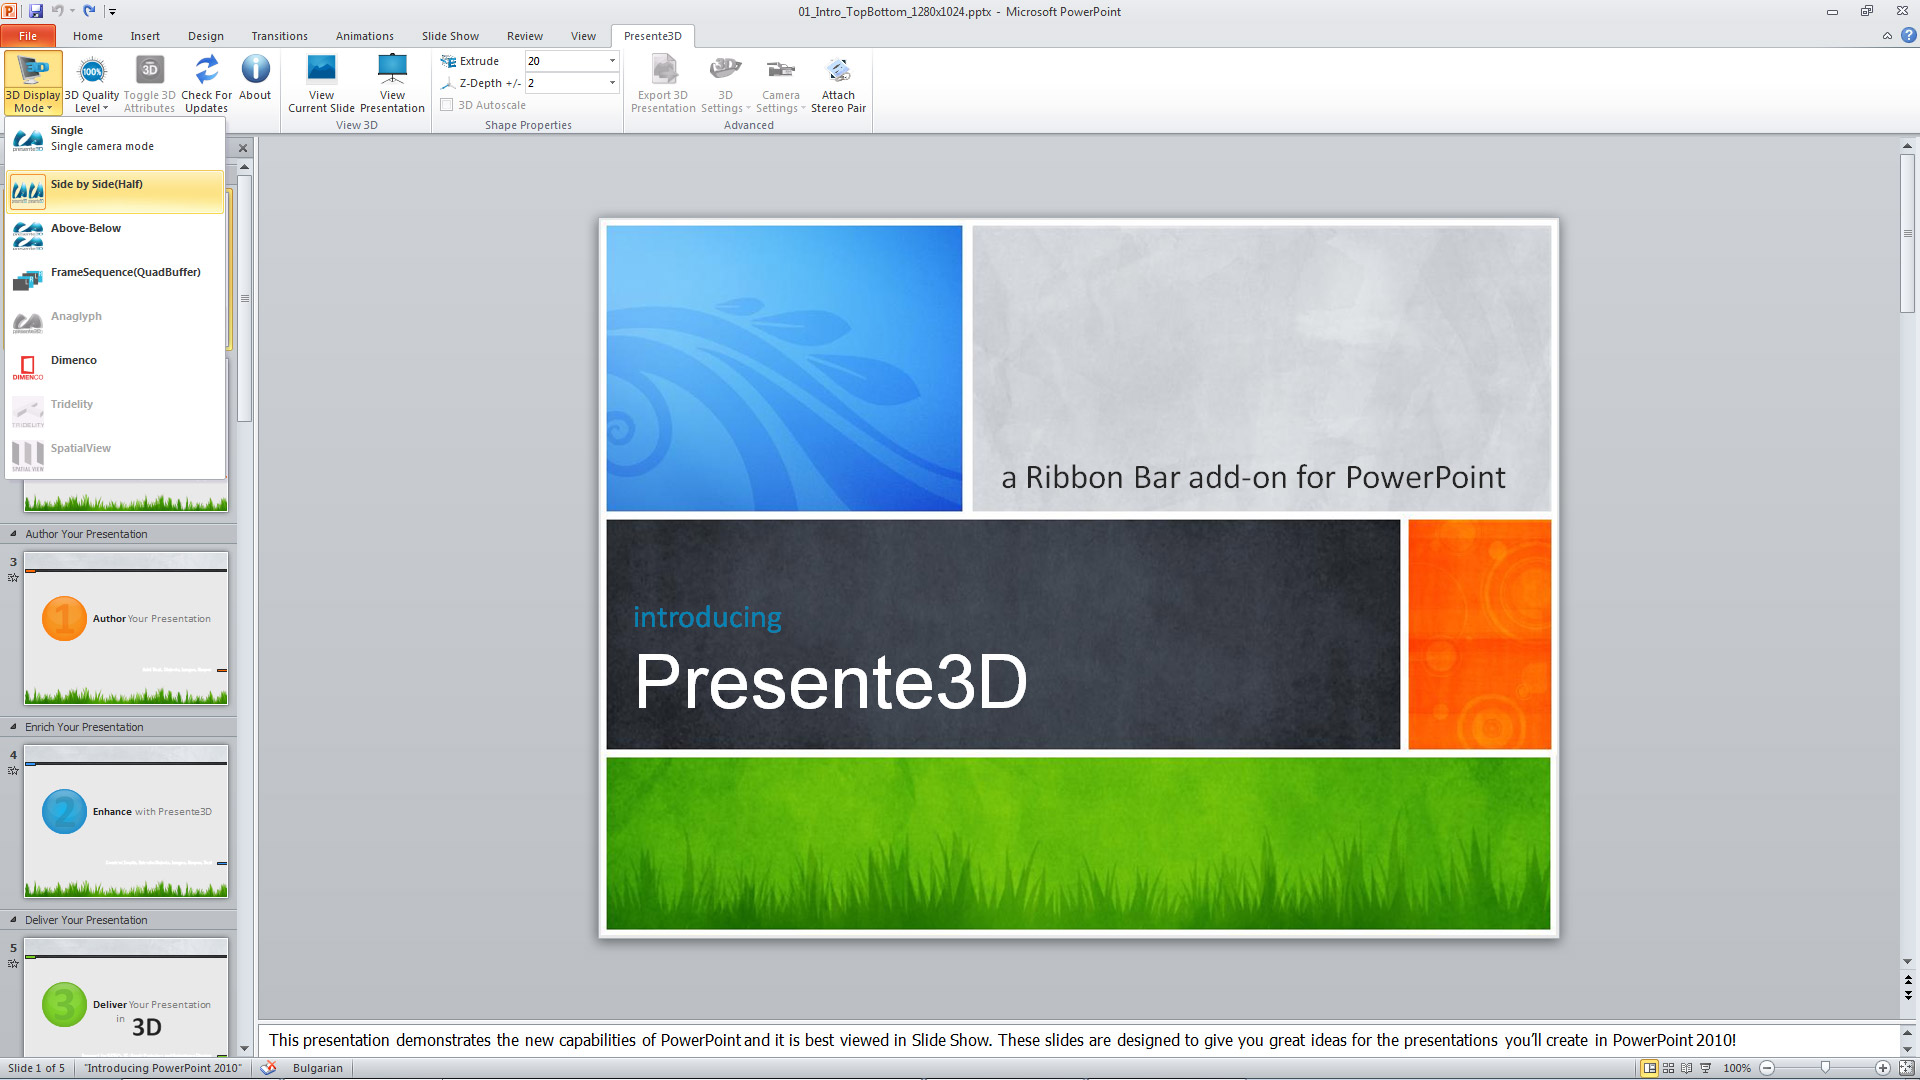 Creating Stereo 3D Presentations in PowerPoint Using Presente3D ...